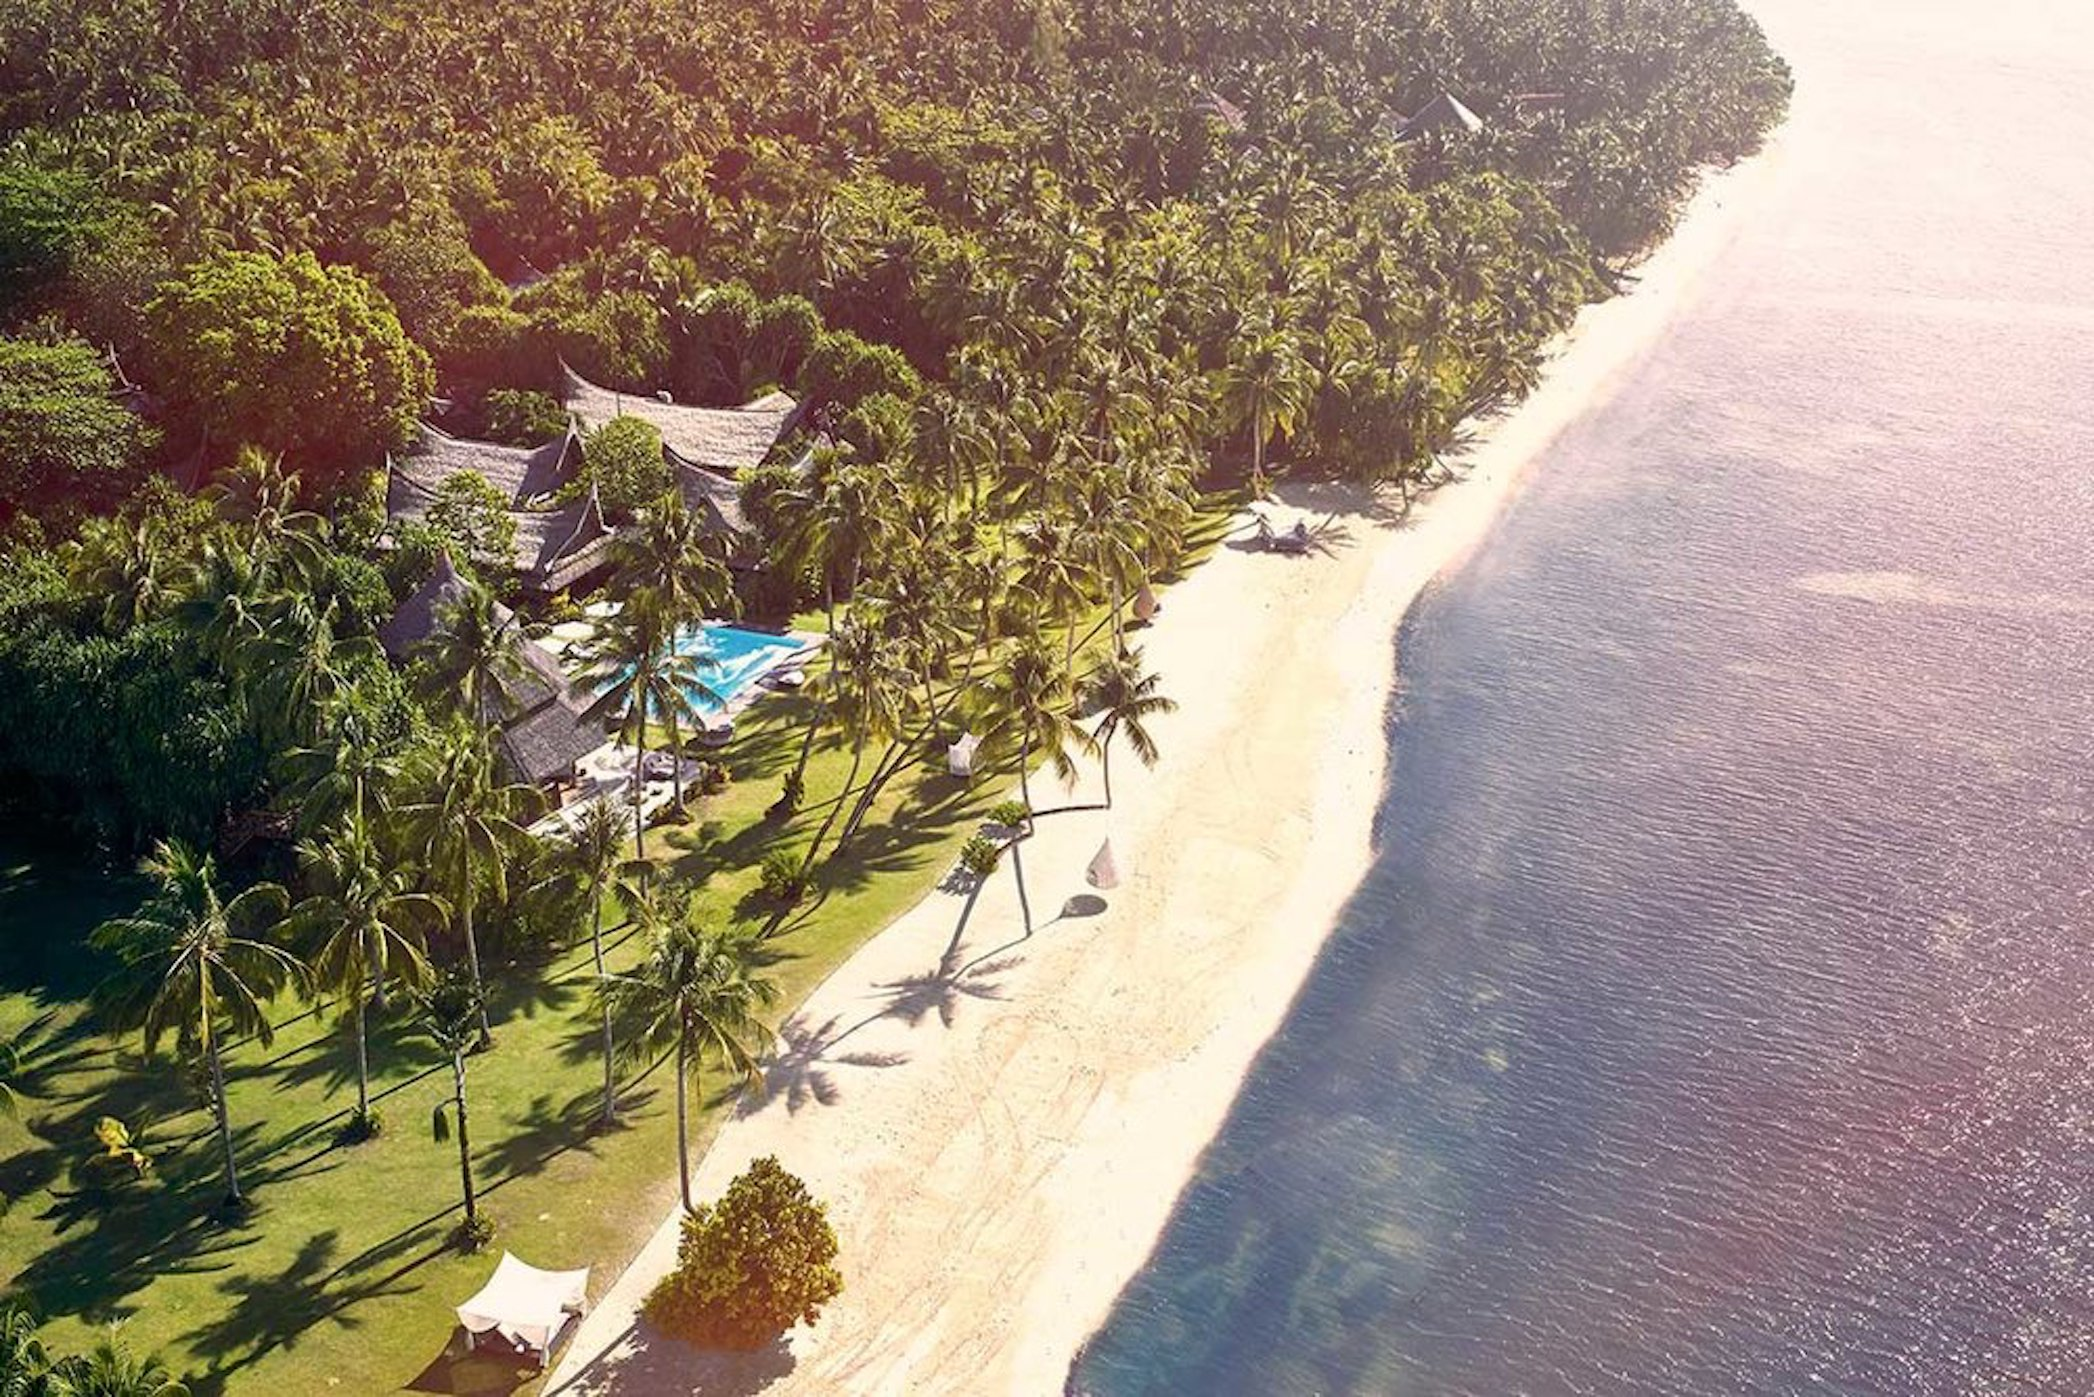 Private islands for rent: Nay Palad)